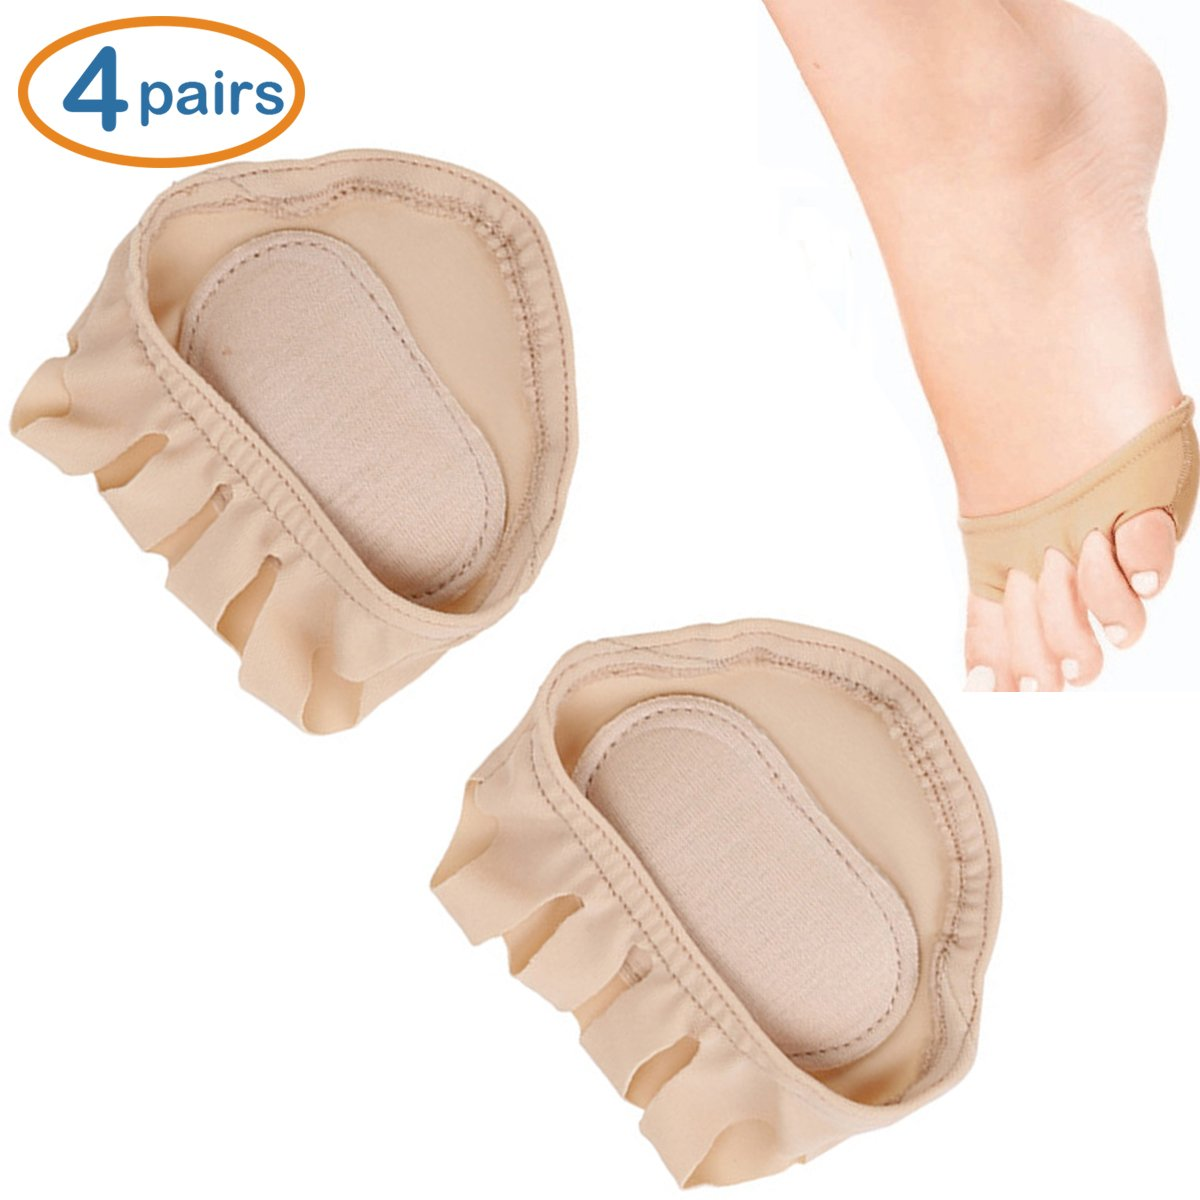 LOHOME® Forefoot Pads, Women's High-heeled Fore Foot Cushion Sole Protectors Toe Caps Covers Pads Toe Separating Socks – Skin Color (4 Pairs)